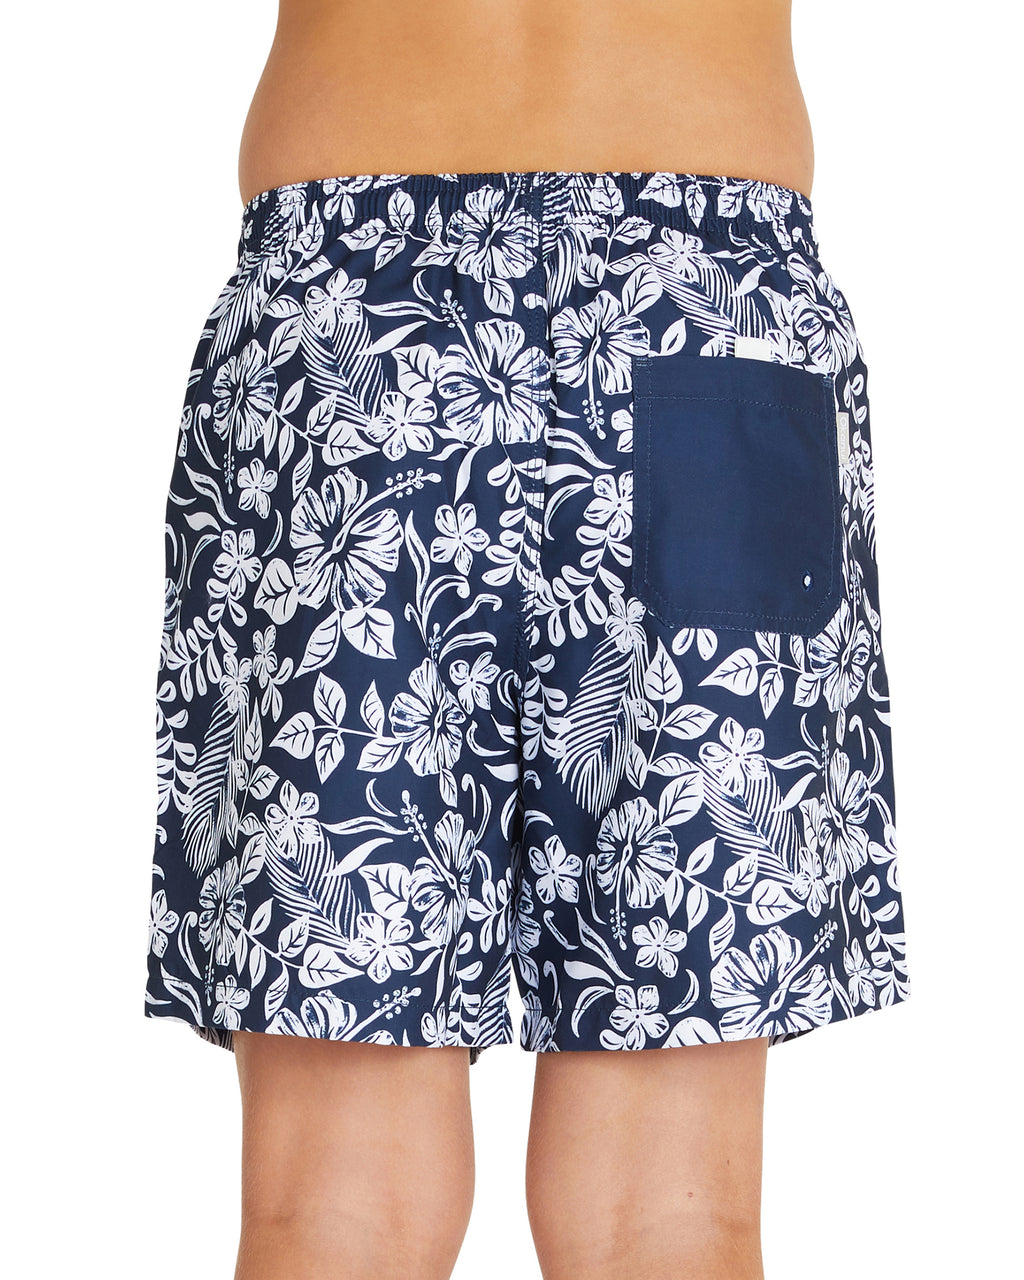 Kids Swim Short - Sands - Navy